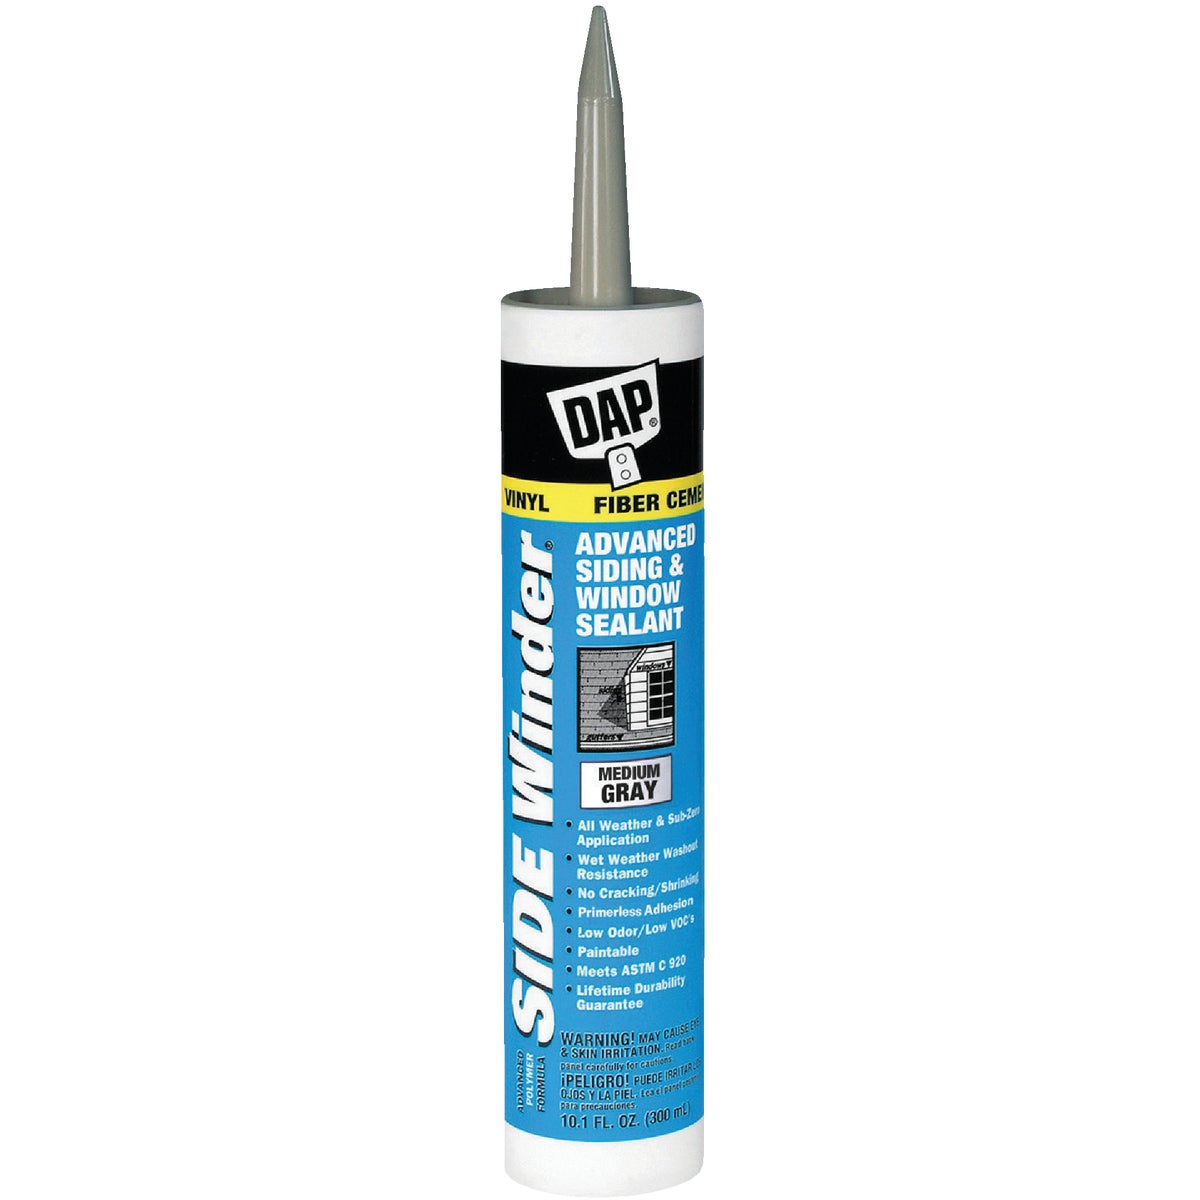 M GRAY SIDEWNDER SEALANT - 00835 by Dap Inc